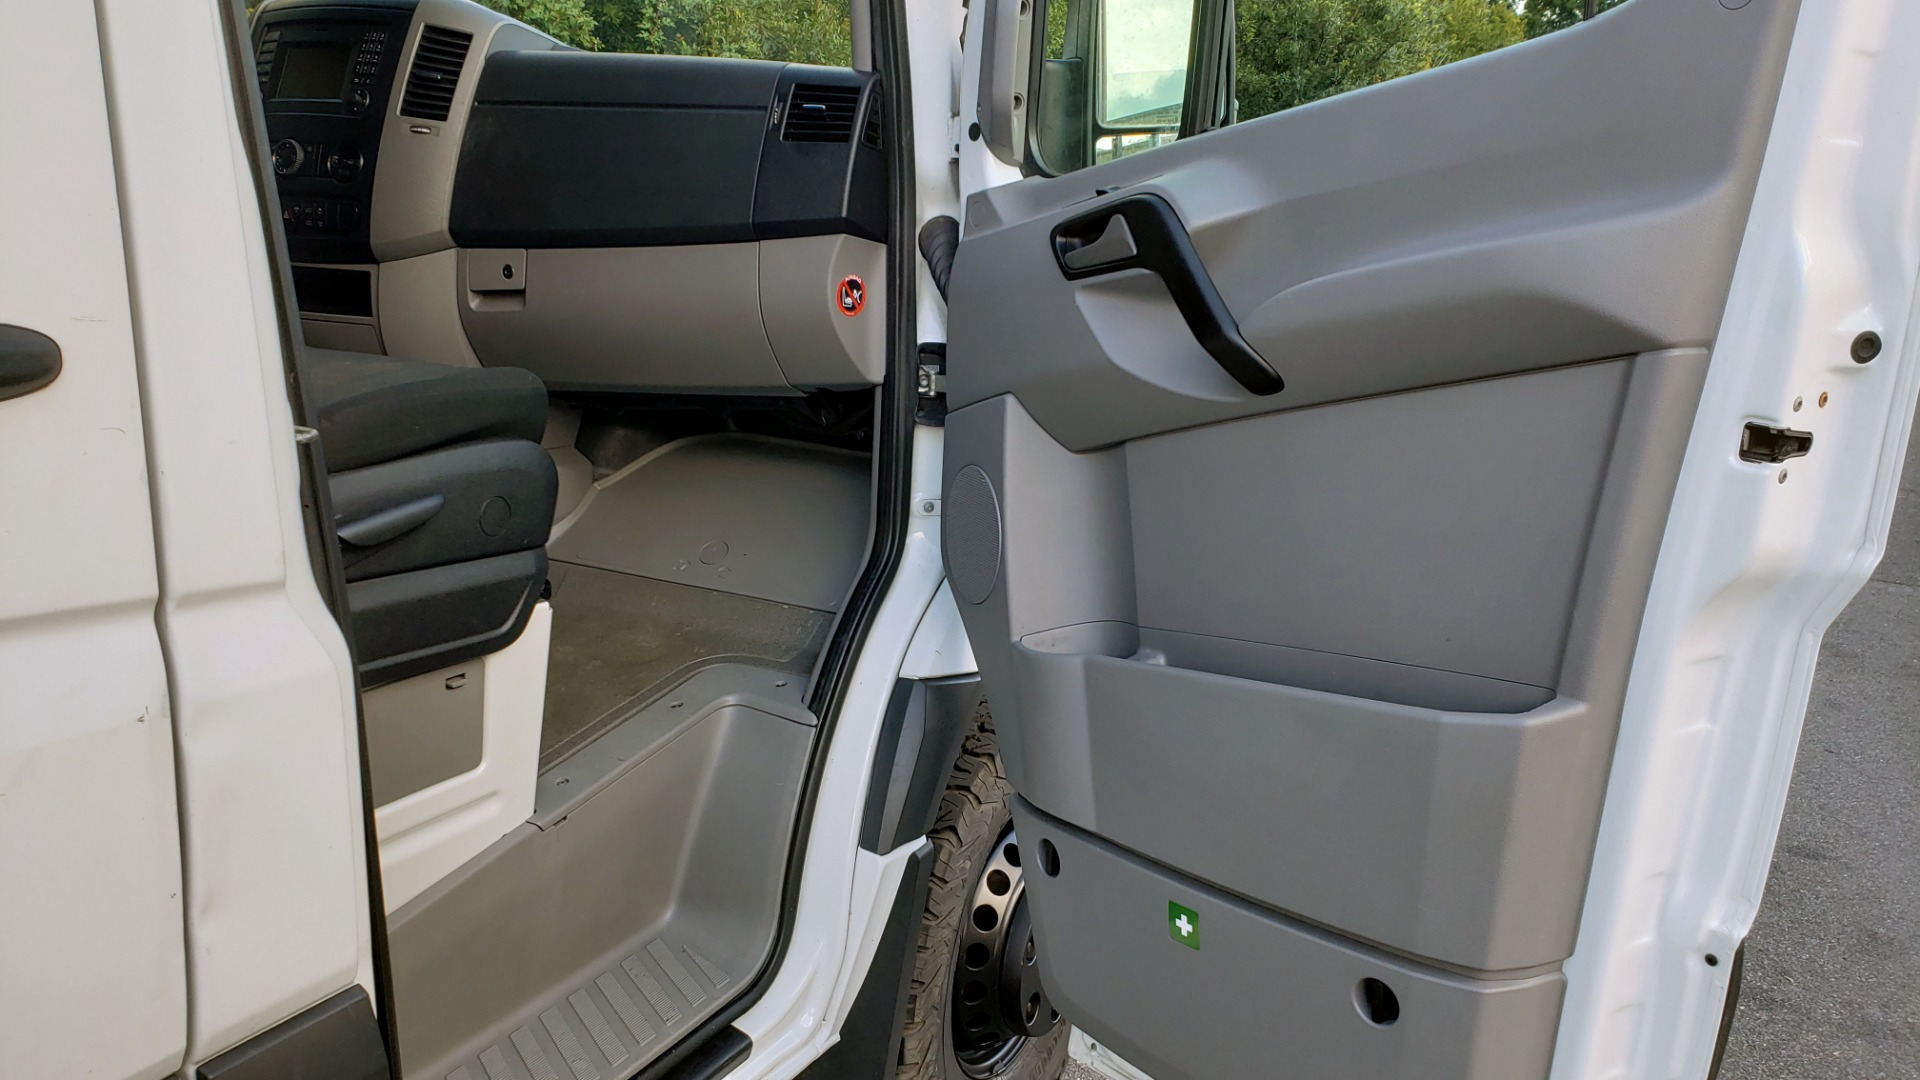 Used 2015 Mercedes-Benz SPRINTER CARGO VAN 4x4 3500 170 EXT / 3.0L V6 TURBO DIESEL / 5-SPD AUTO / REARVIEW for sale $51,999 at Formula Imports in Charlotte NC 28227 18